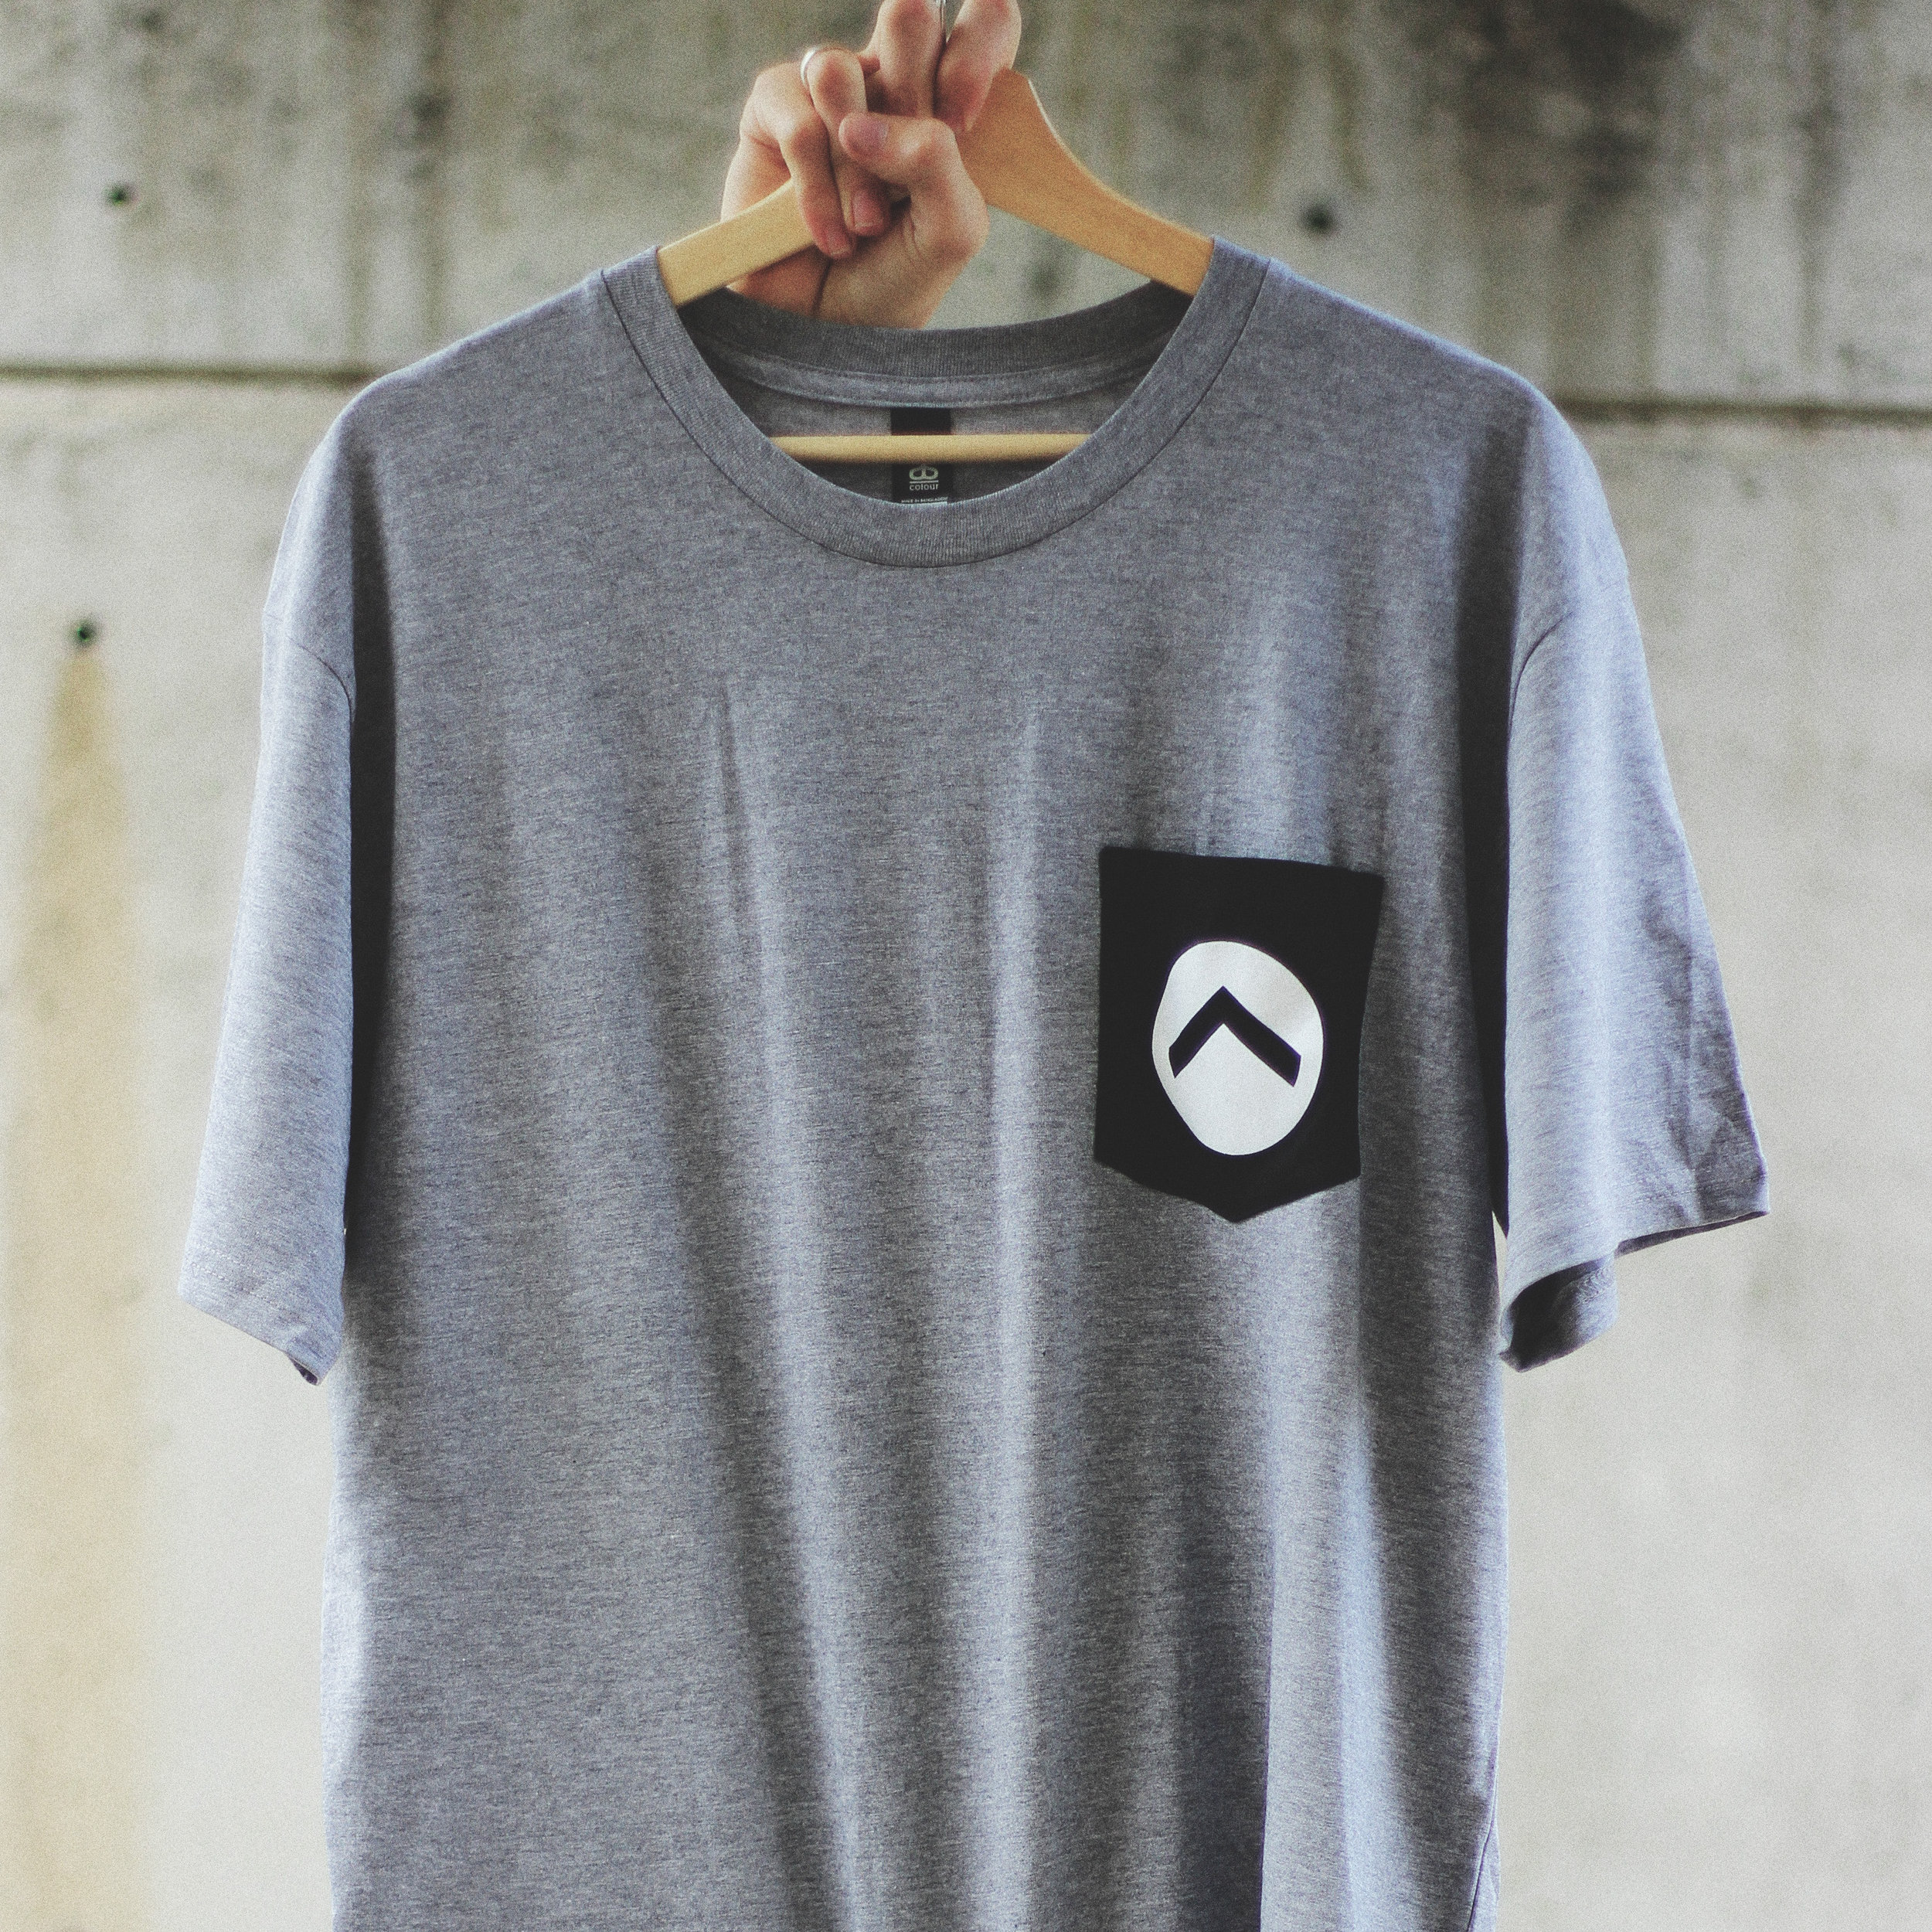 Pocket Tee - Printed on AS ColourStaple Tee